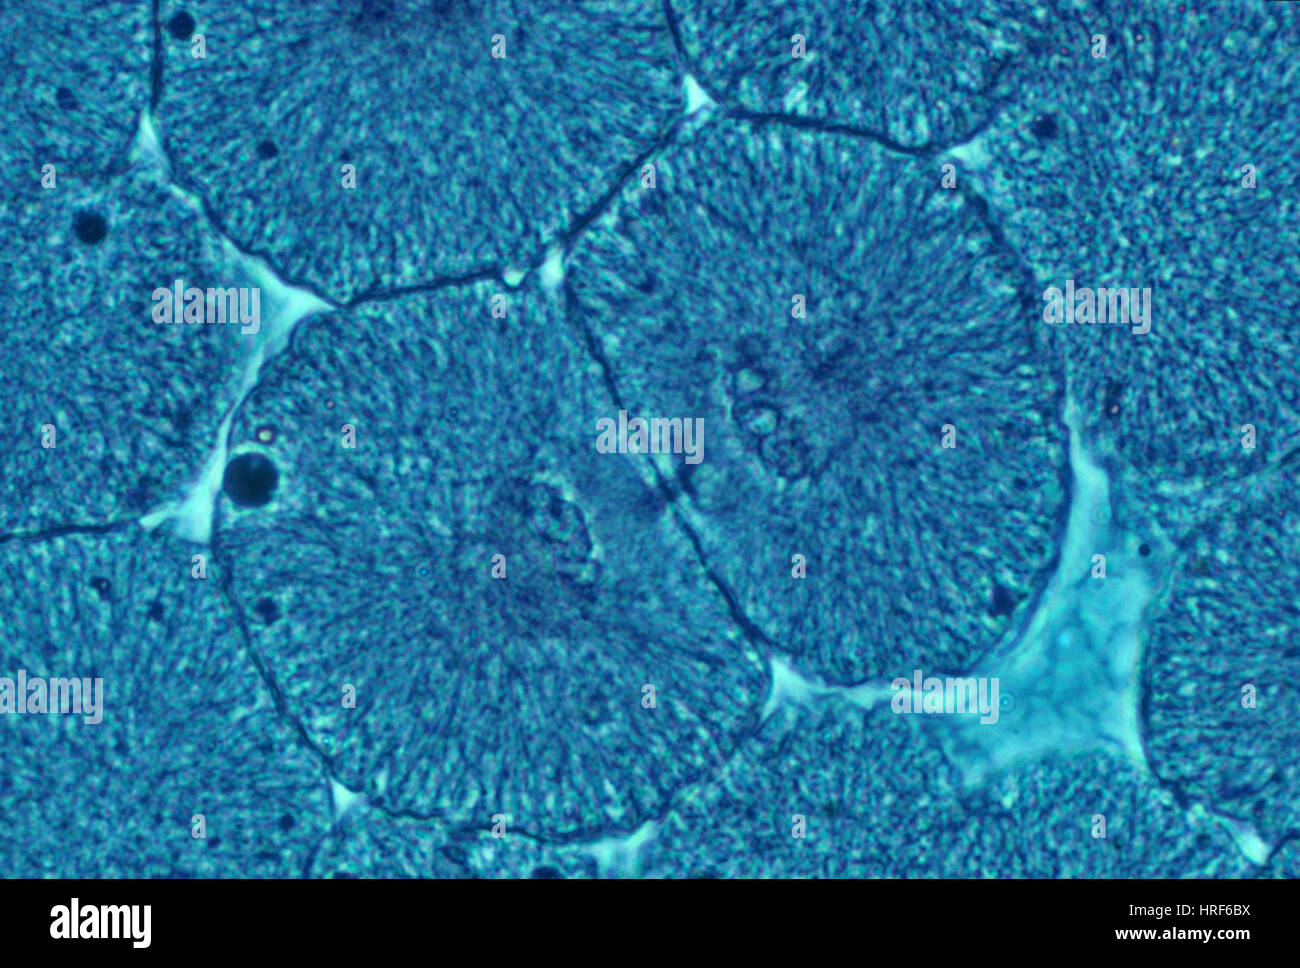 Whitefish Blastula Cells, Cytokinesis, LM Stock Photo: 134943982 - Alamy